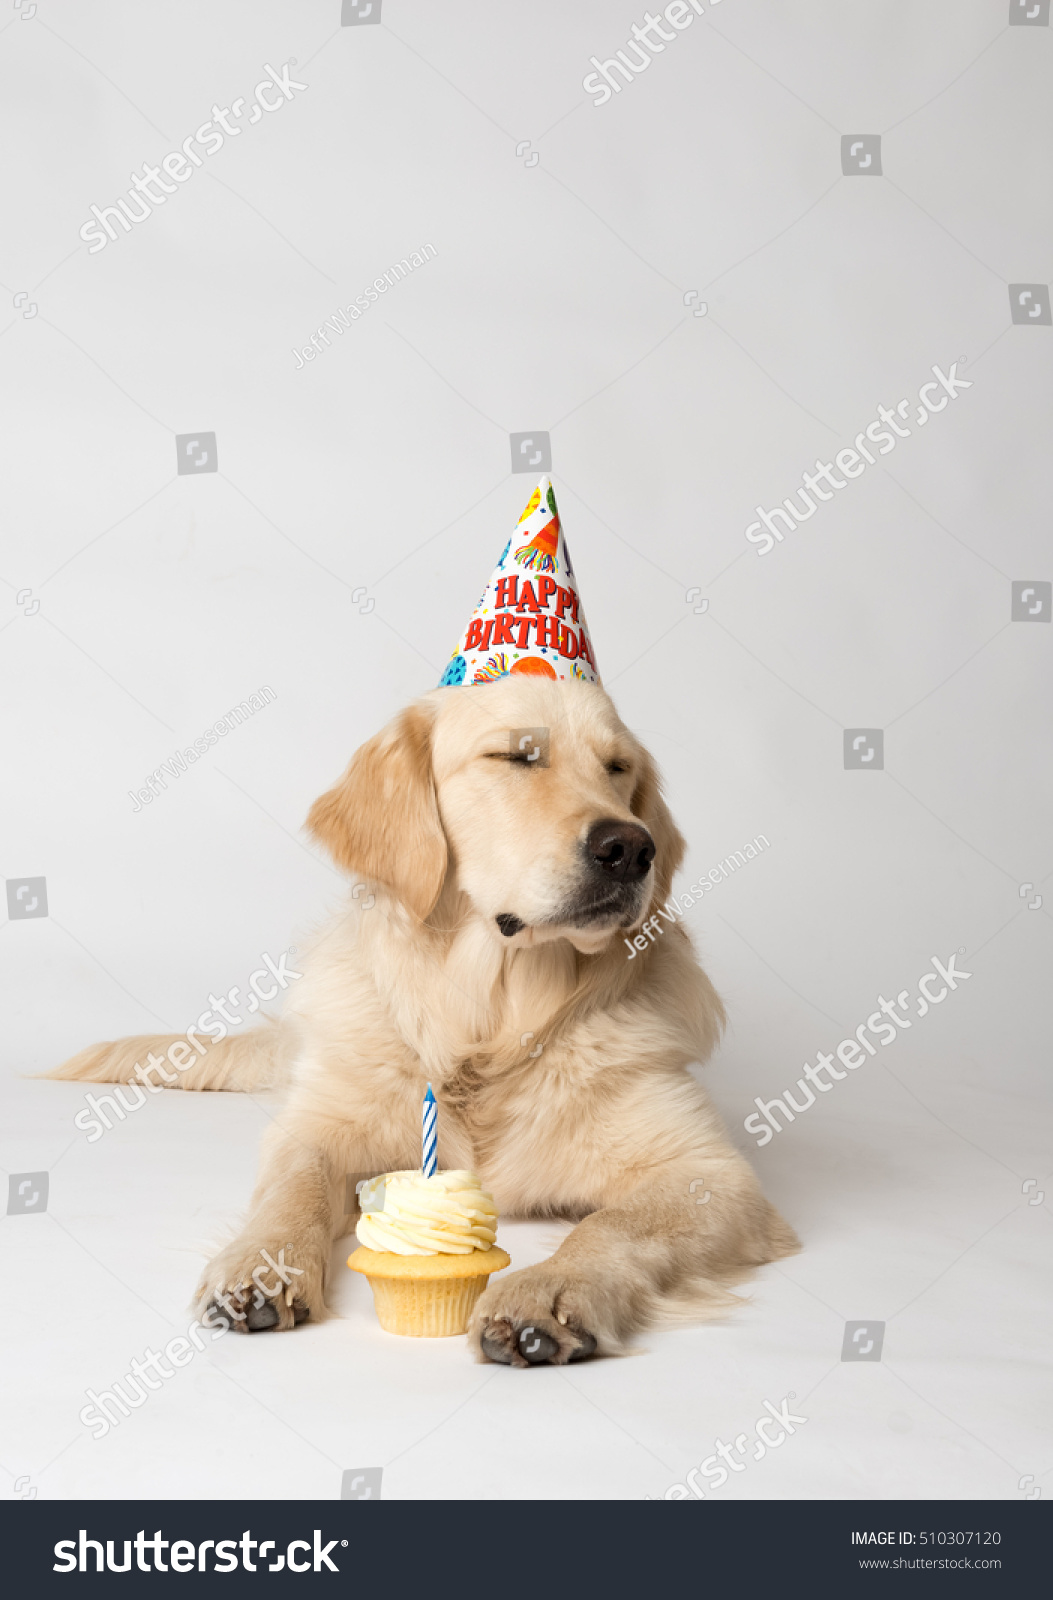 Birthday Dog With Party Hat And Cupcake Seems Unimpressed By His Shot On White